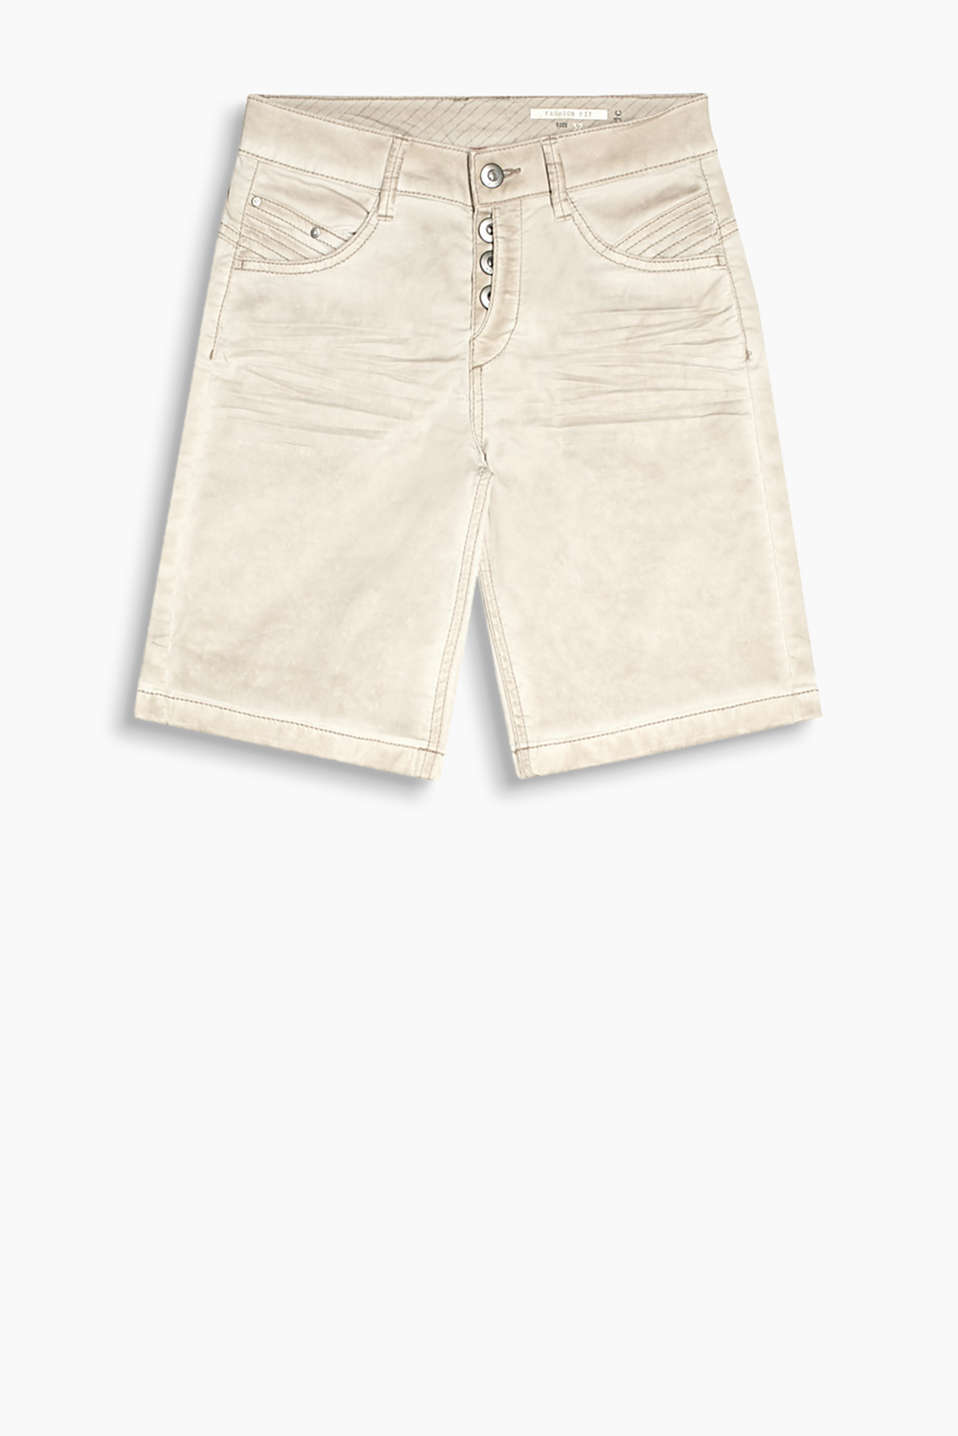 Cotton shorts with stretch for comfort, a casual trend dye and whiskering